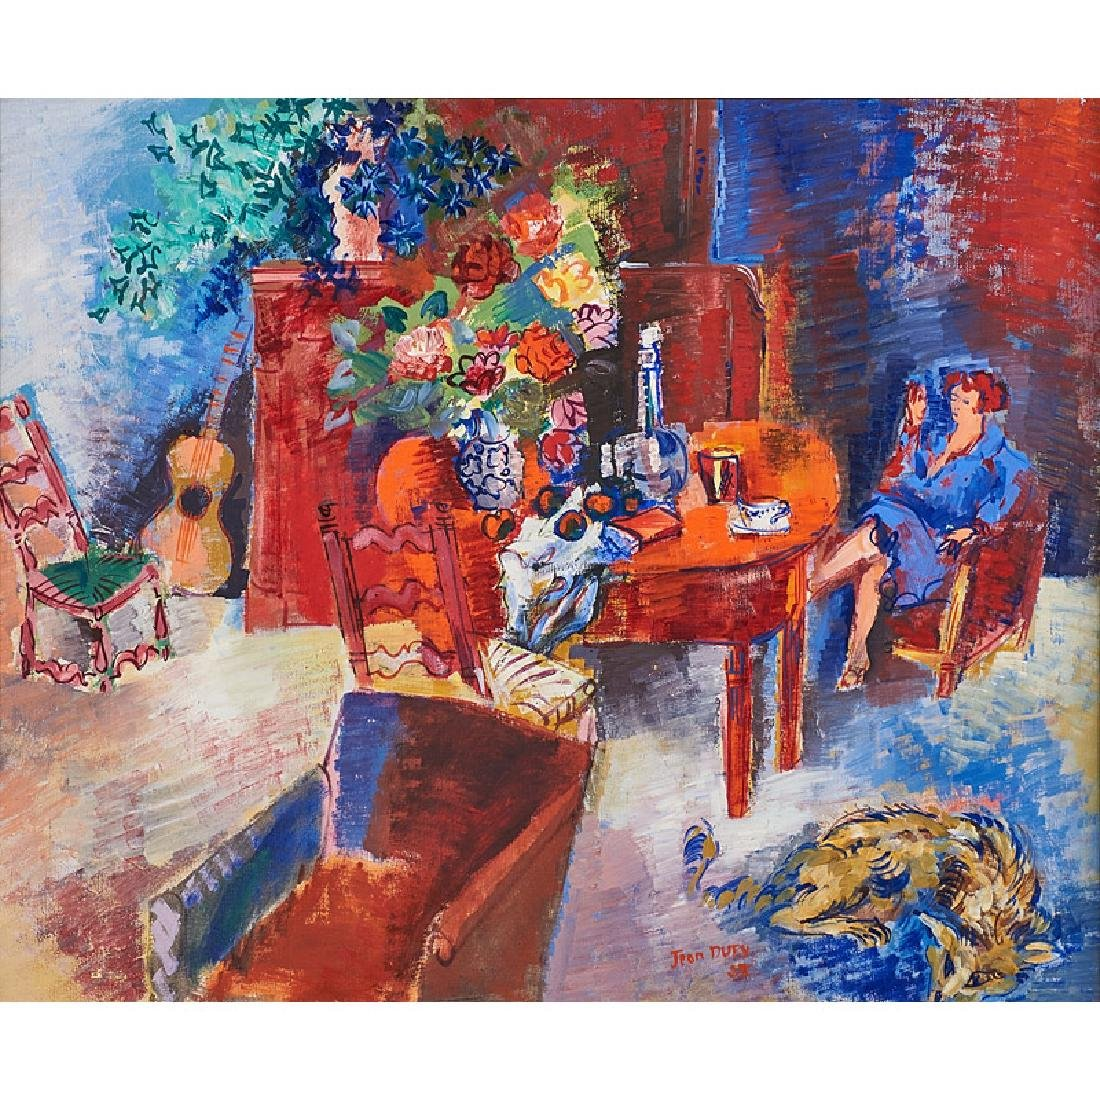 Jean Dufy (French, 1888-1964)